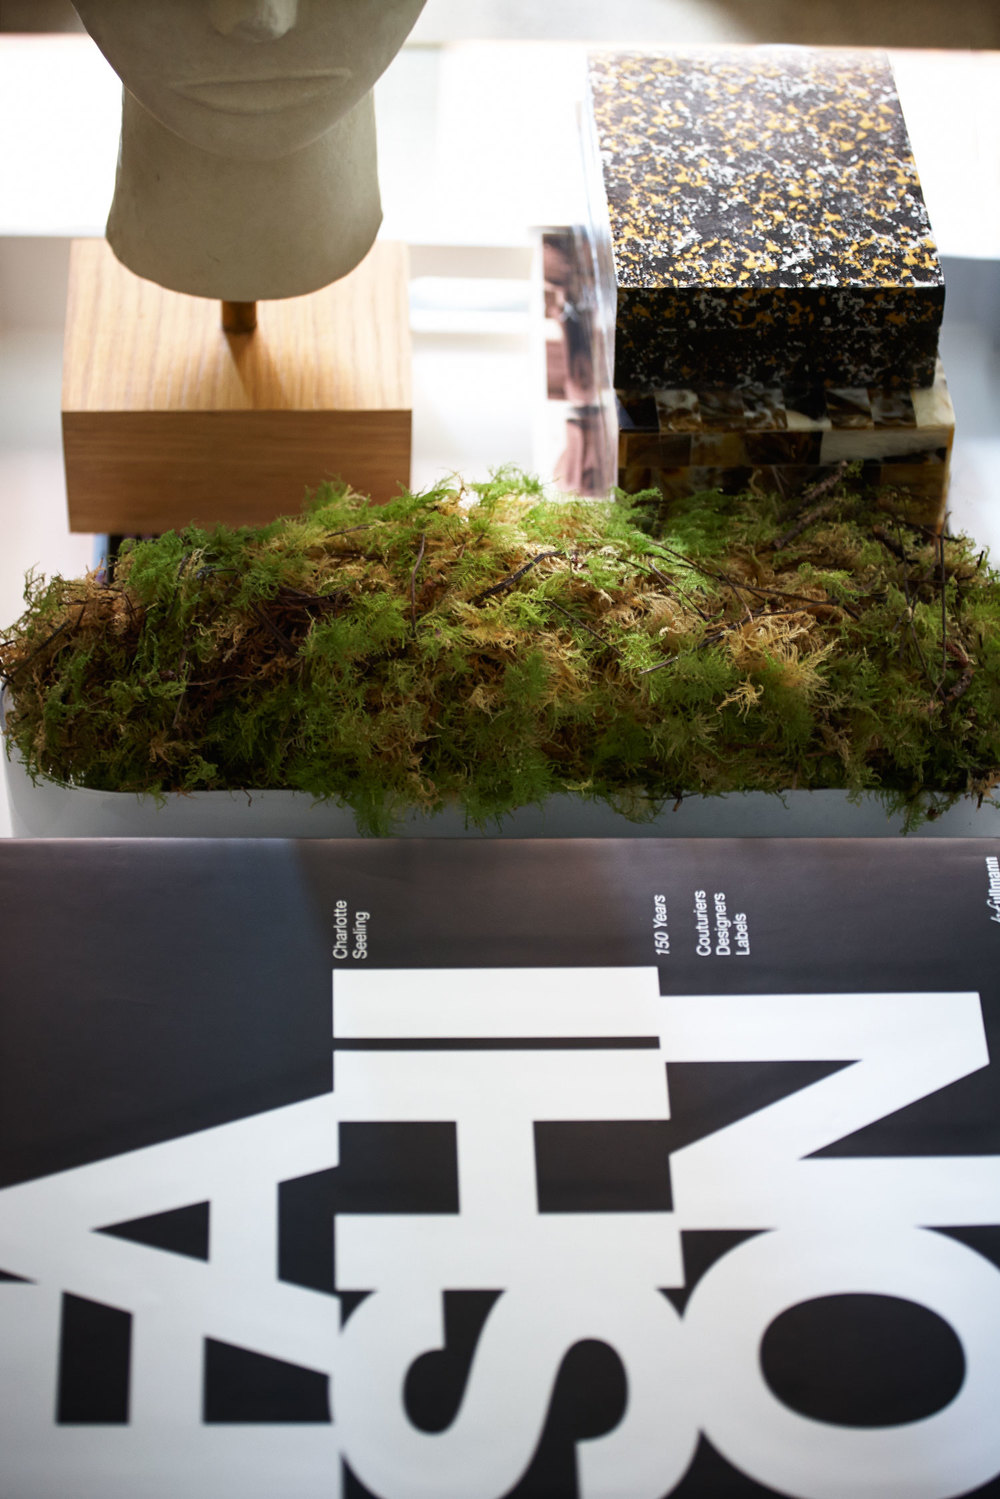 fashion-coffee-table-book-greenery-objet-dart-diane-bergeron.jpg